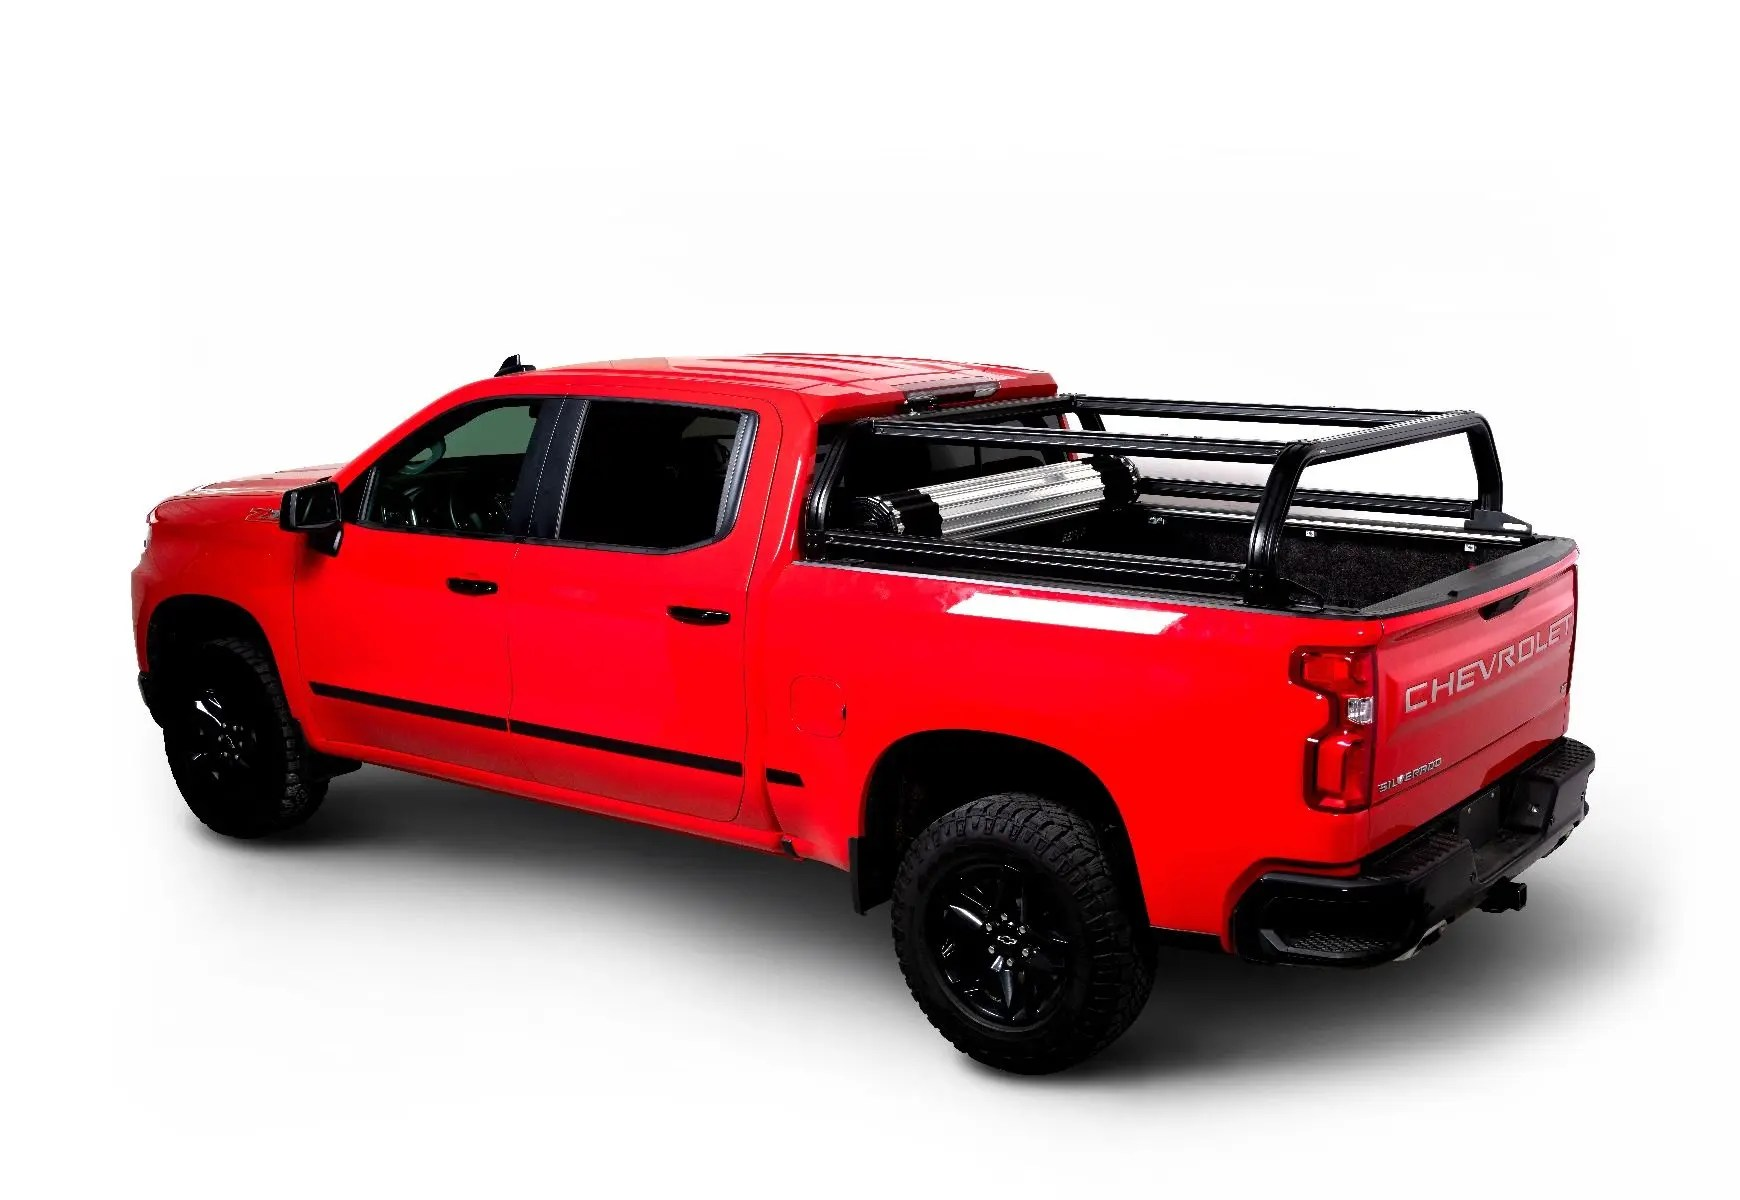 venturetec overland bed rack for chevy silverado or gmc sierra 1500 2019 to present 6ft 5in standard bed